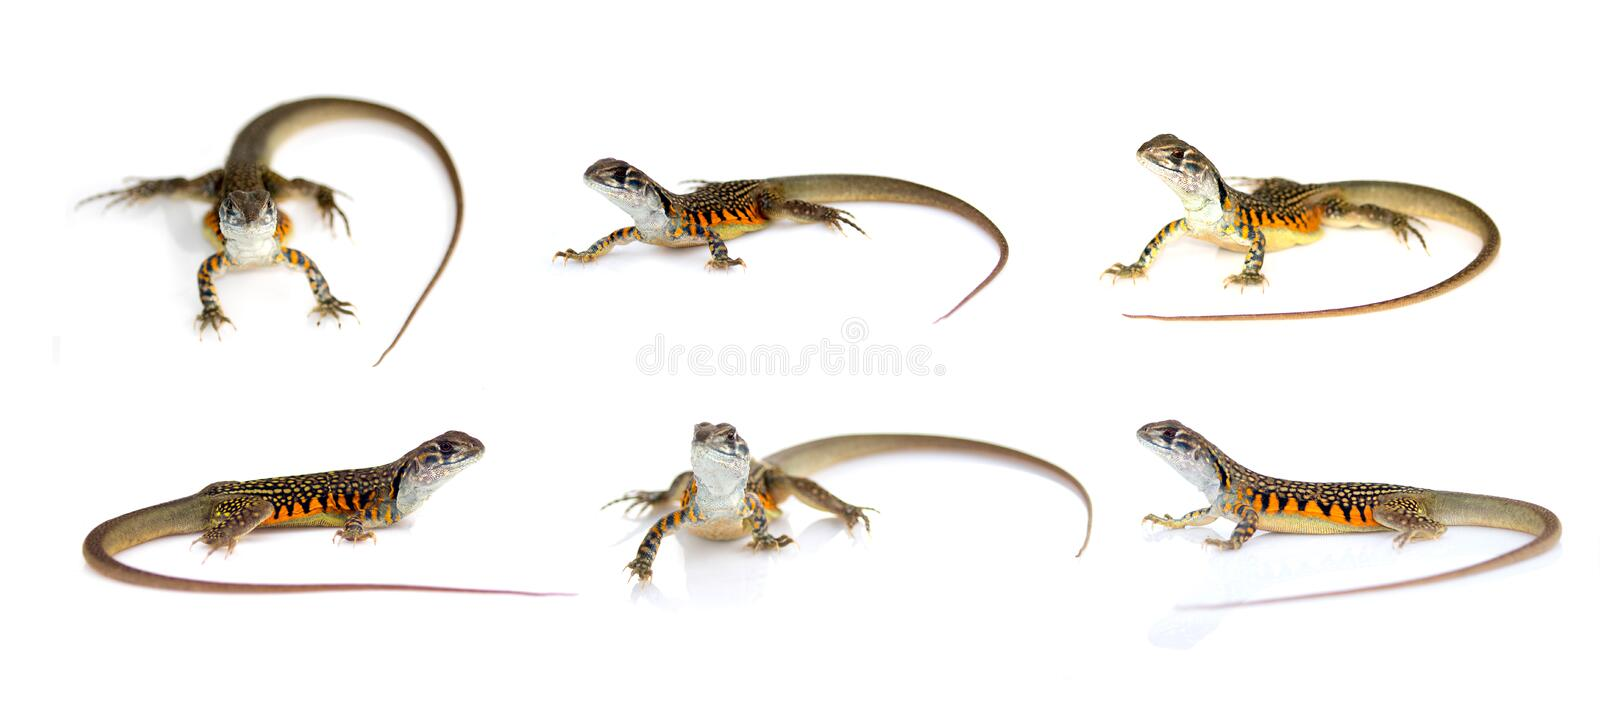 Group of butterfly agama lizard Leiolepis Cuvier isolated on a white background. Reptile. Animal.  royalty free illustration